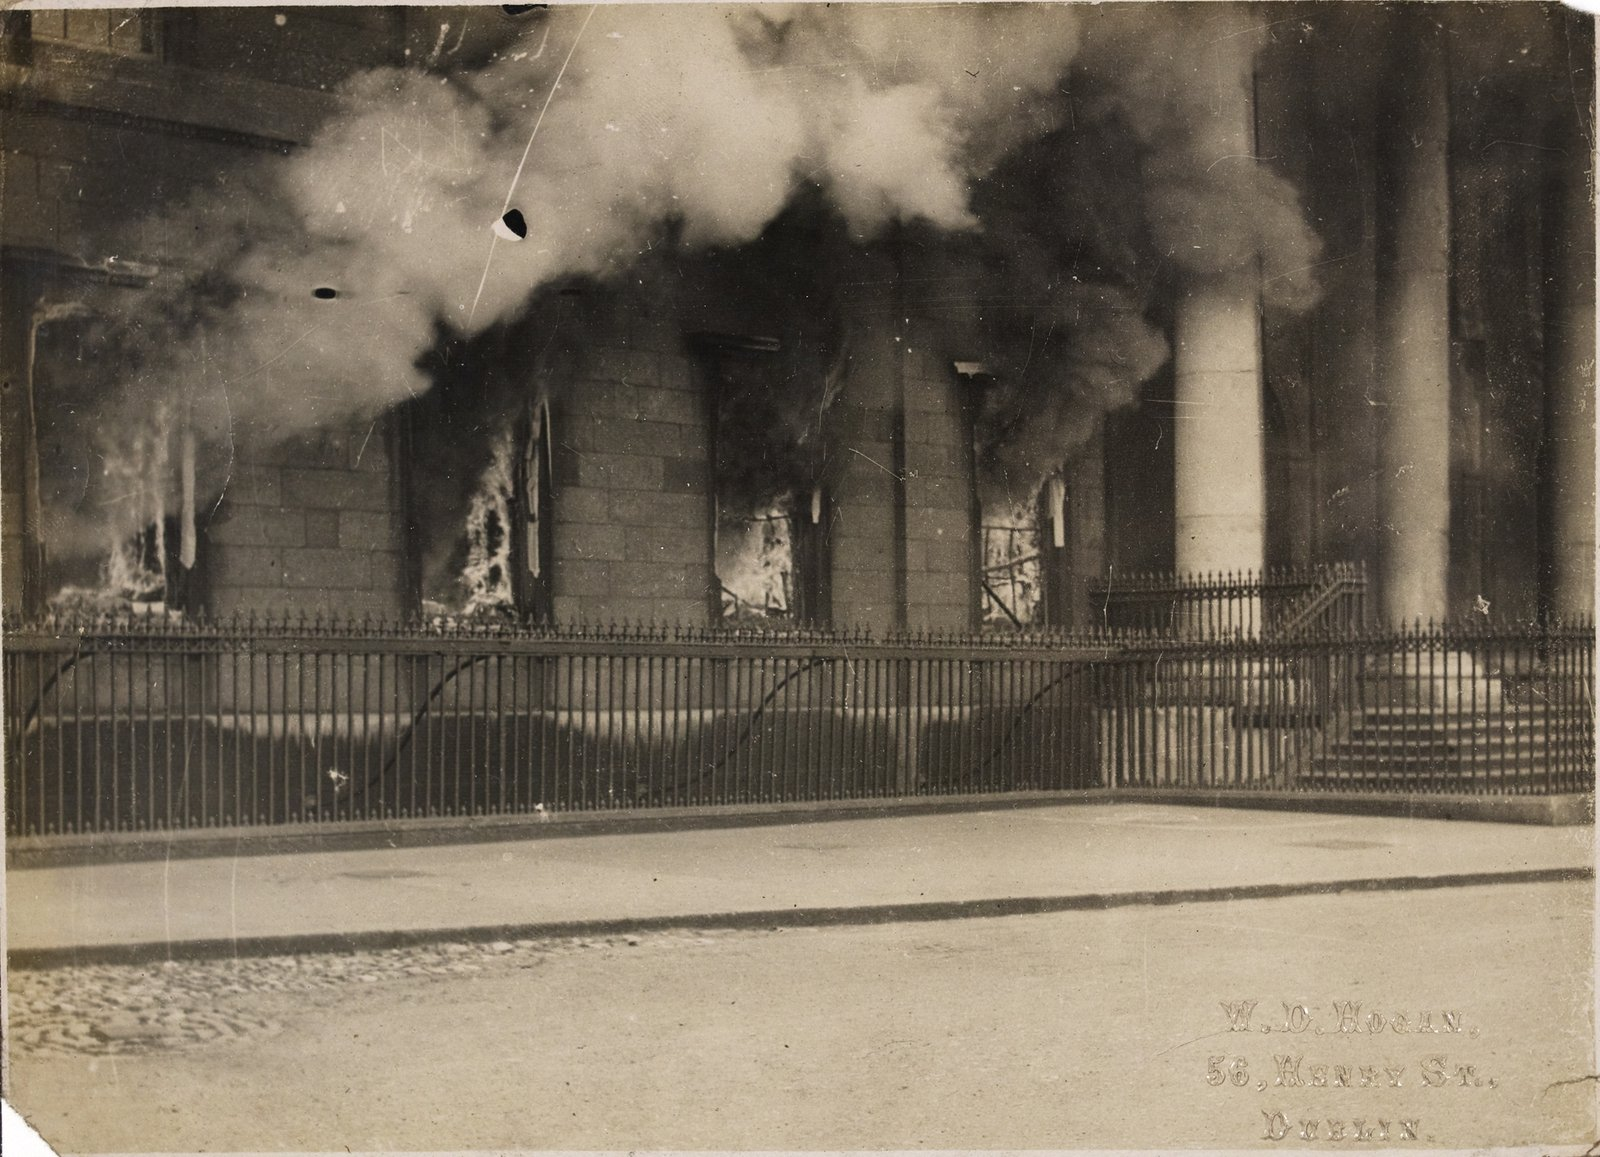 Image - The Customs House on fire in June 1921. Photo: National Library of Ireland